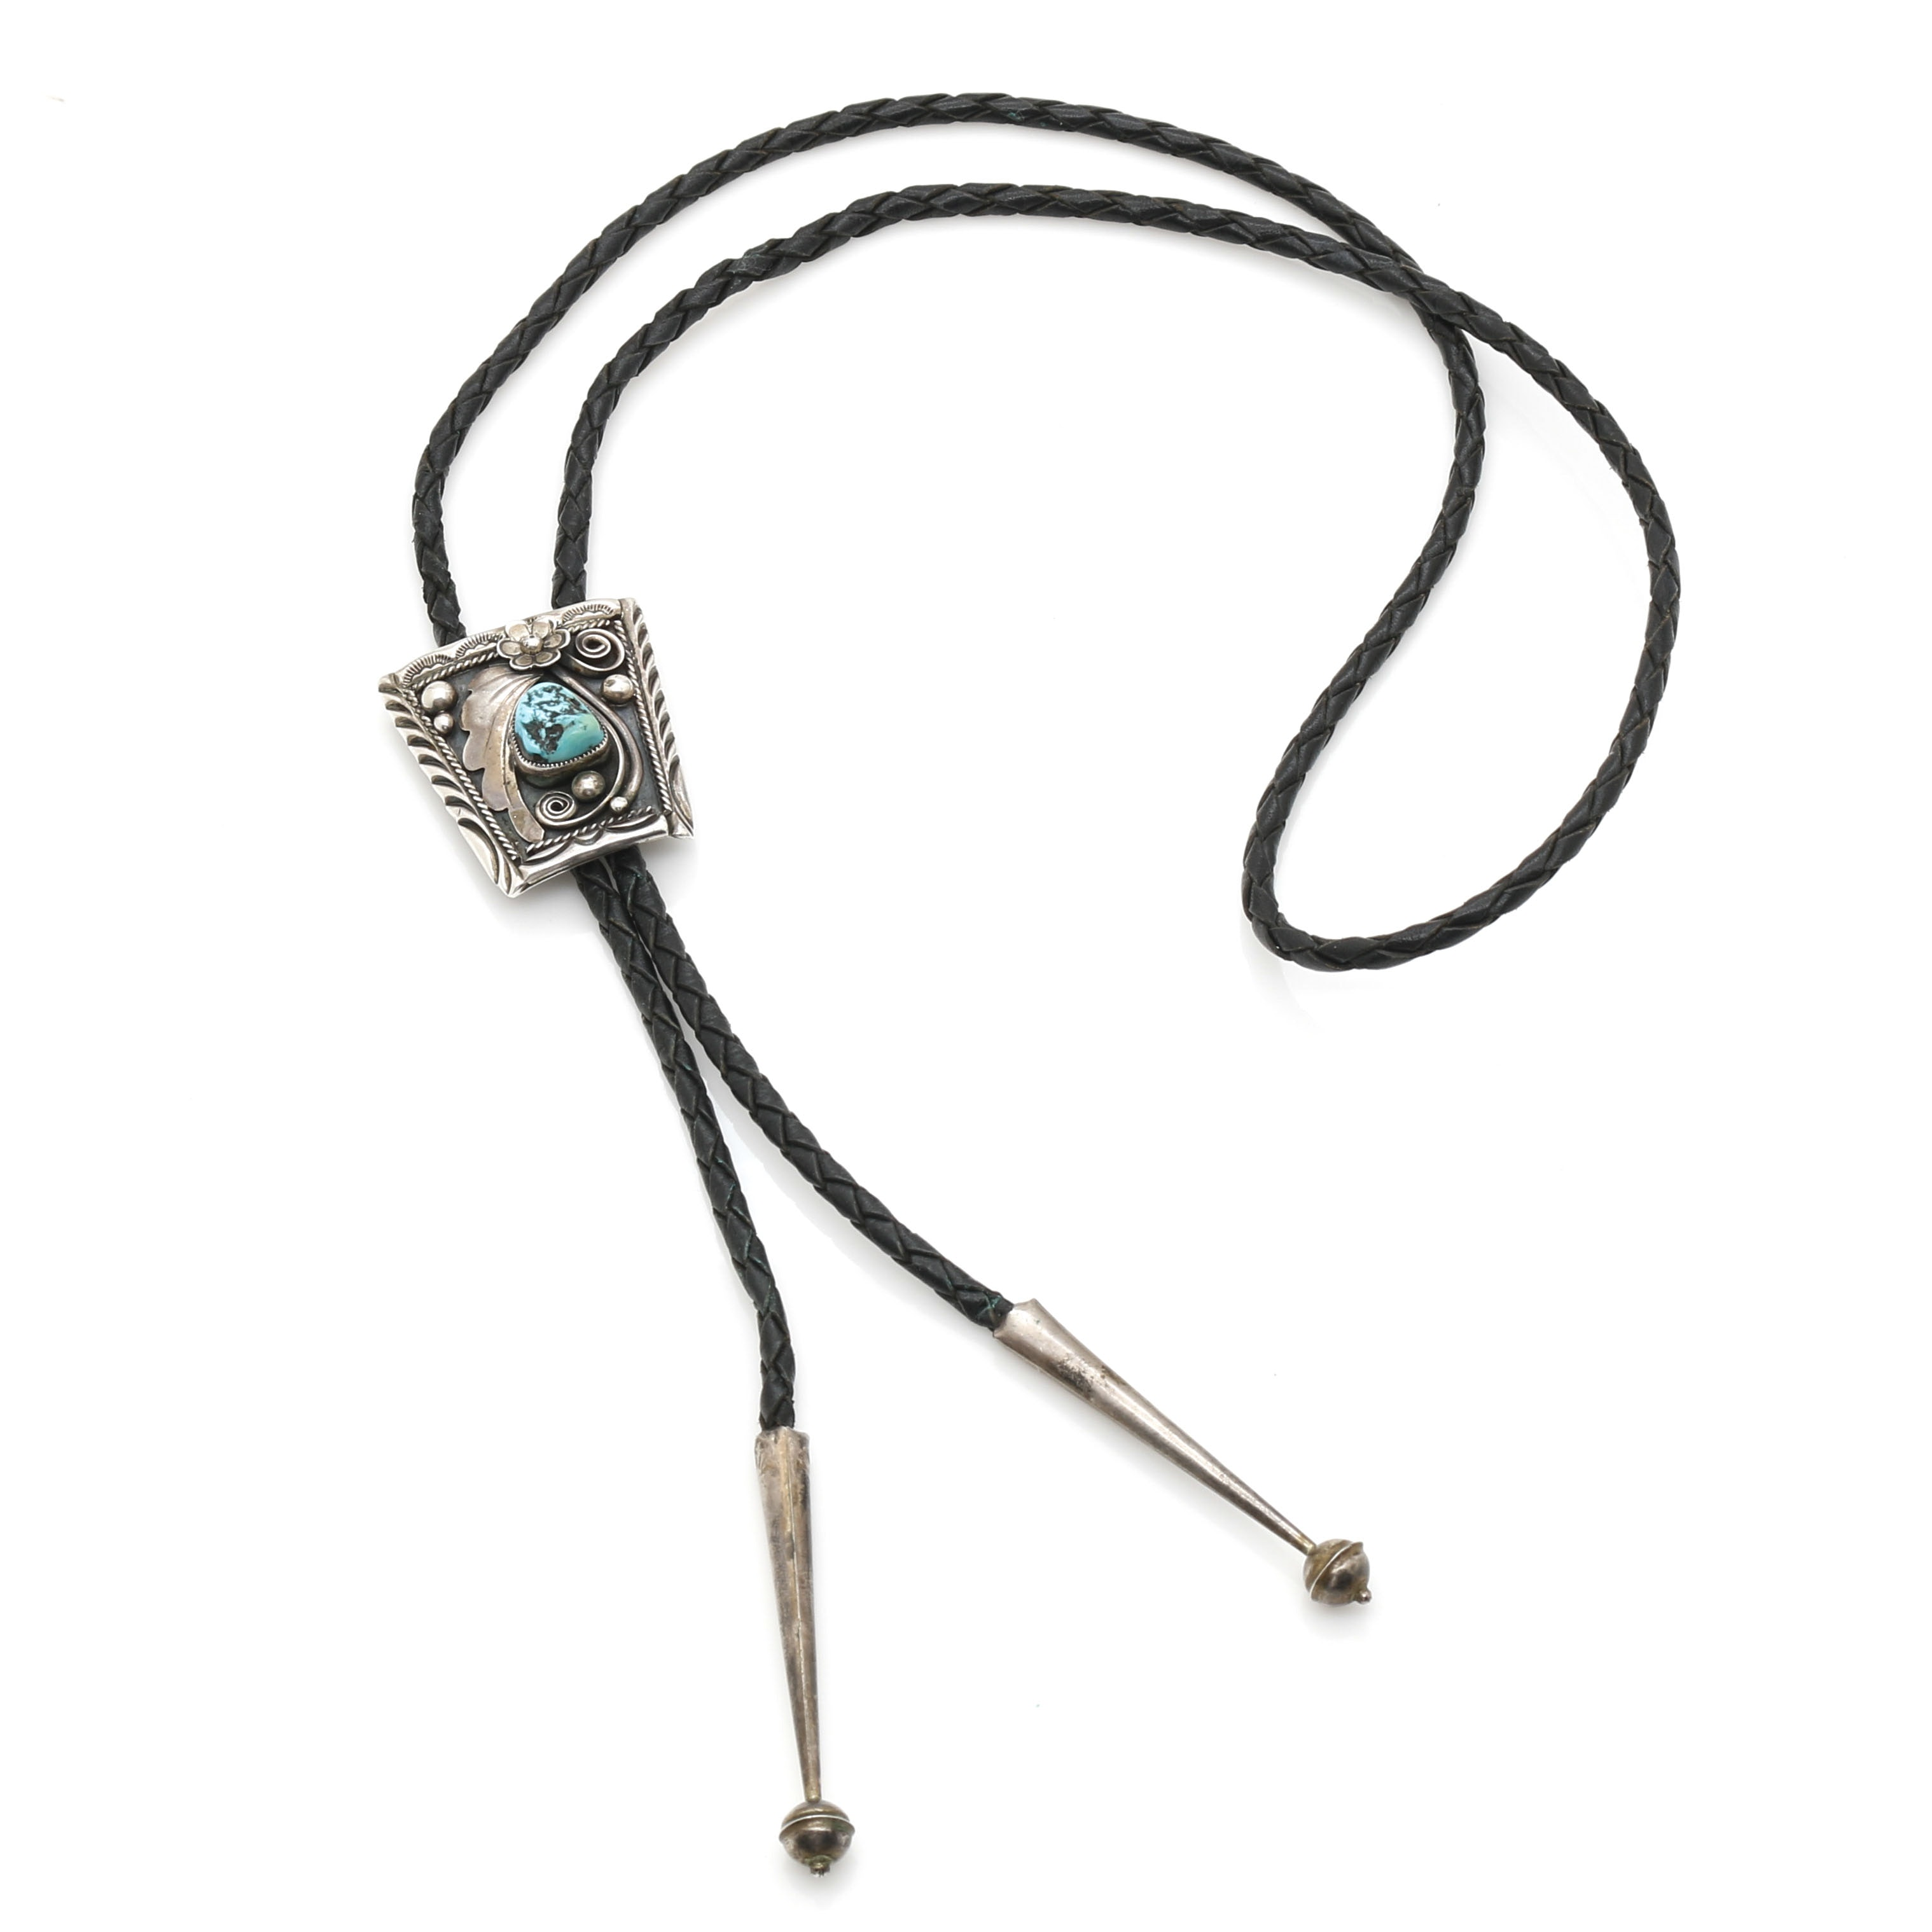 Navajo Sterling Silver Appliqué and Turquoise Bolo Tie by Henry Yazzie